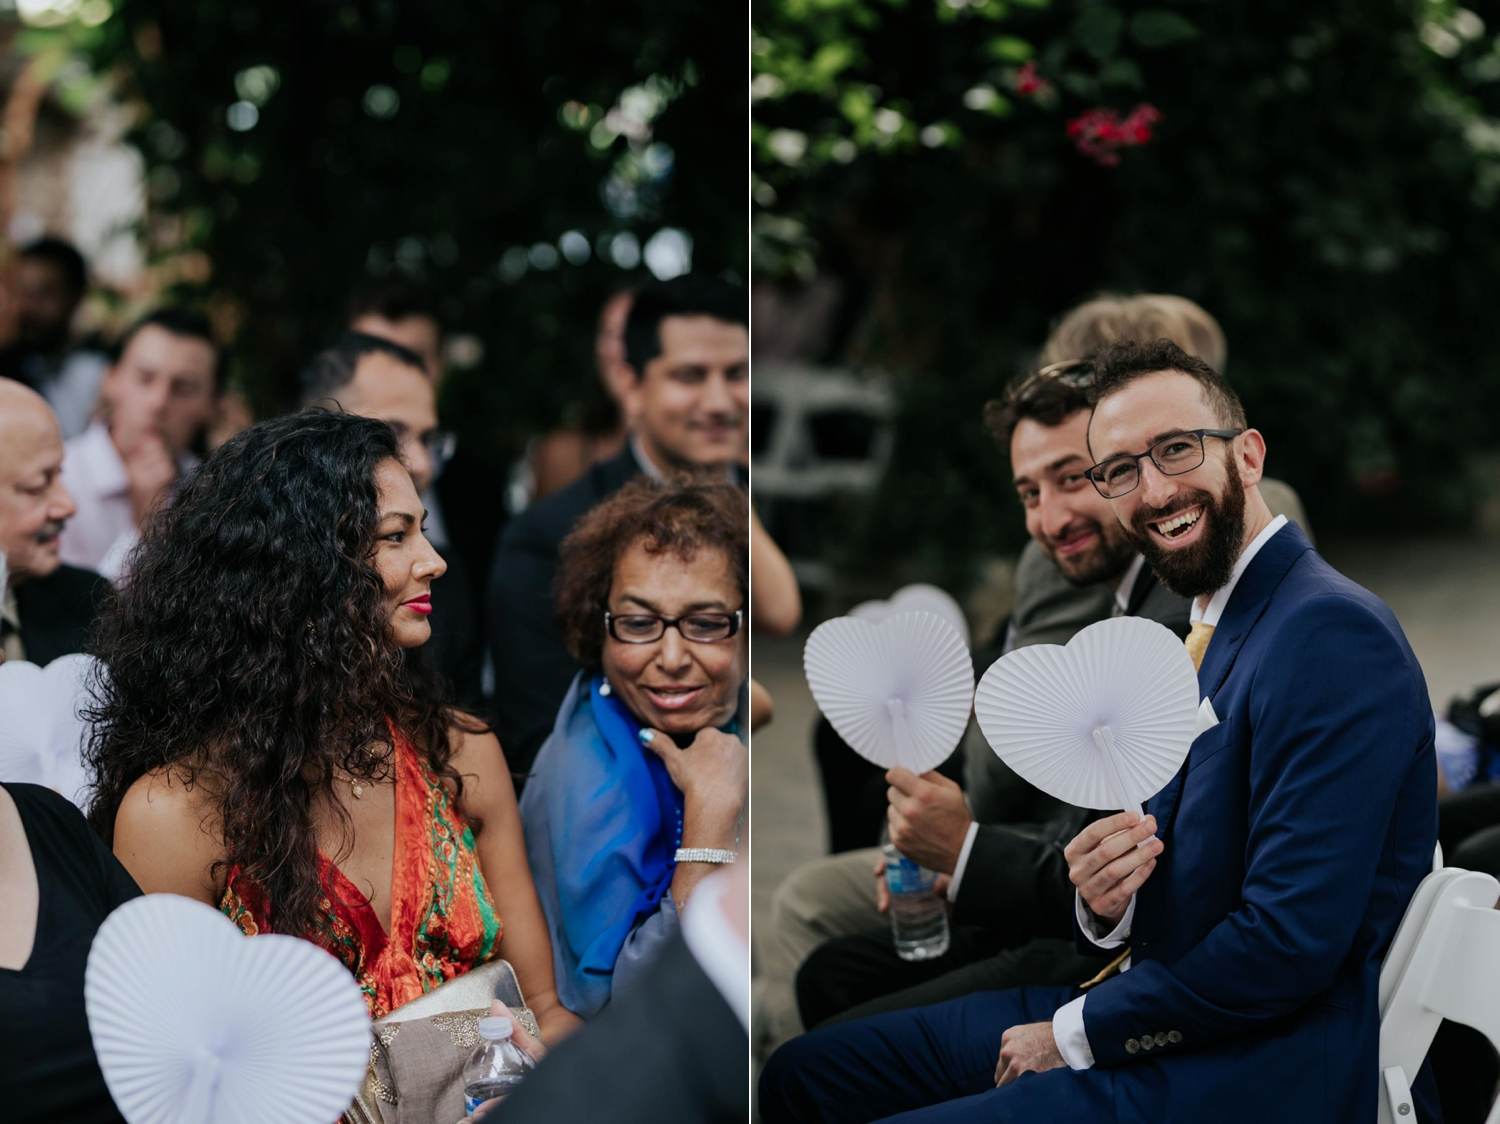 Guests with white heart paper fans in Greenhouse chapel at Madsen's Greenhouse wedding venue in Newmarket close to Toronto